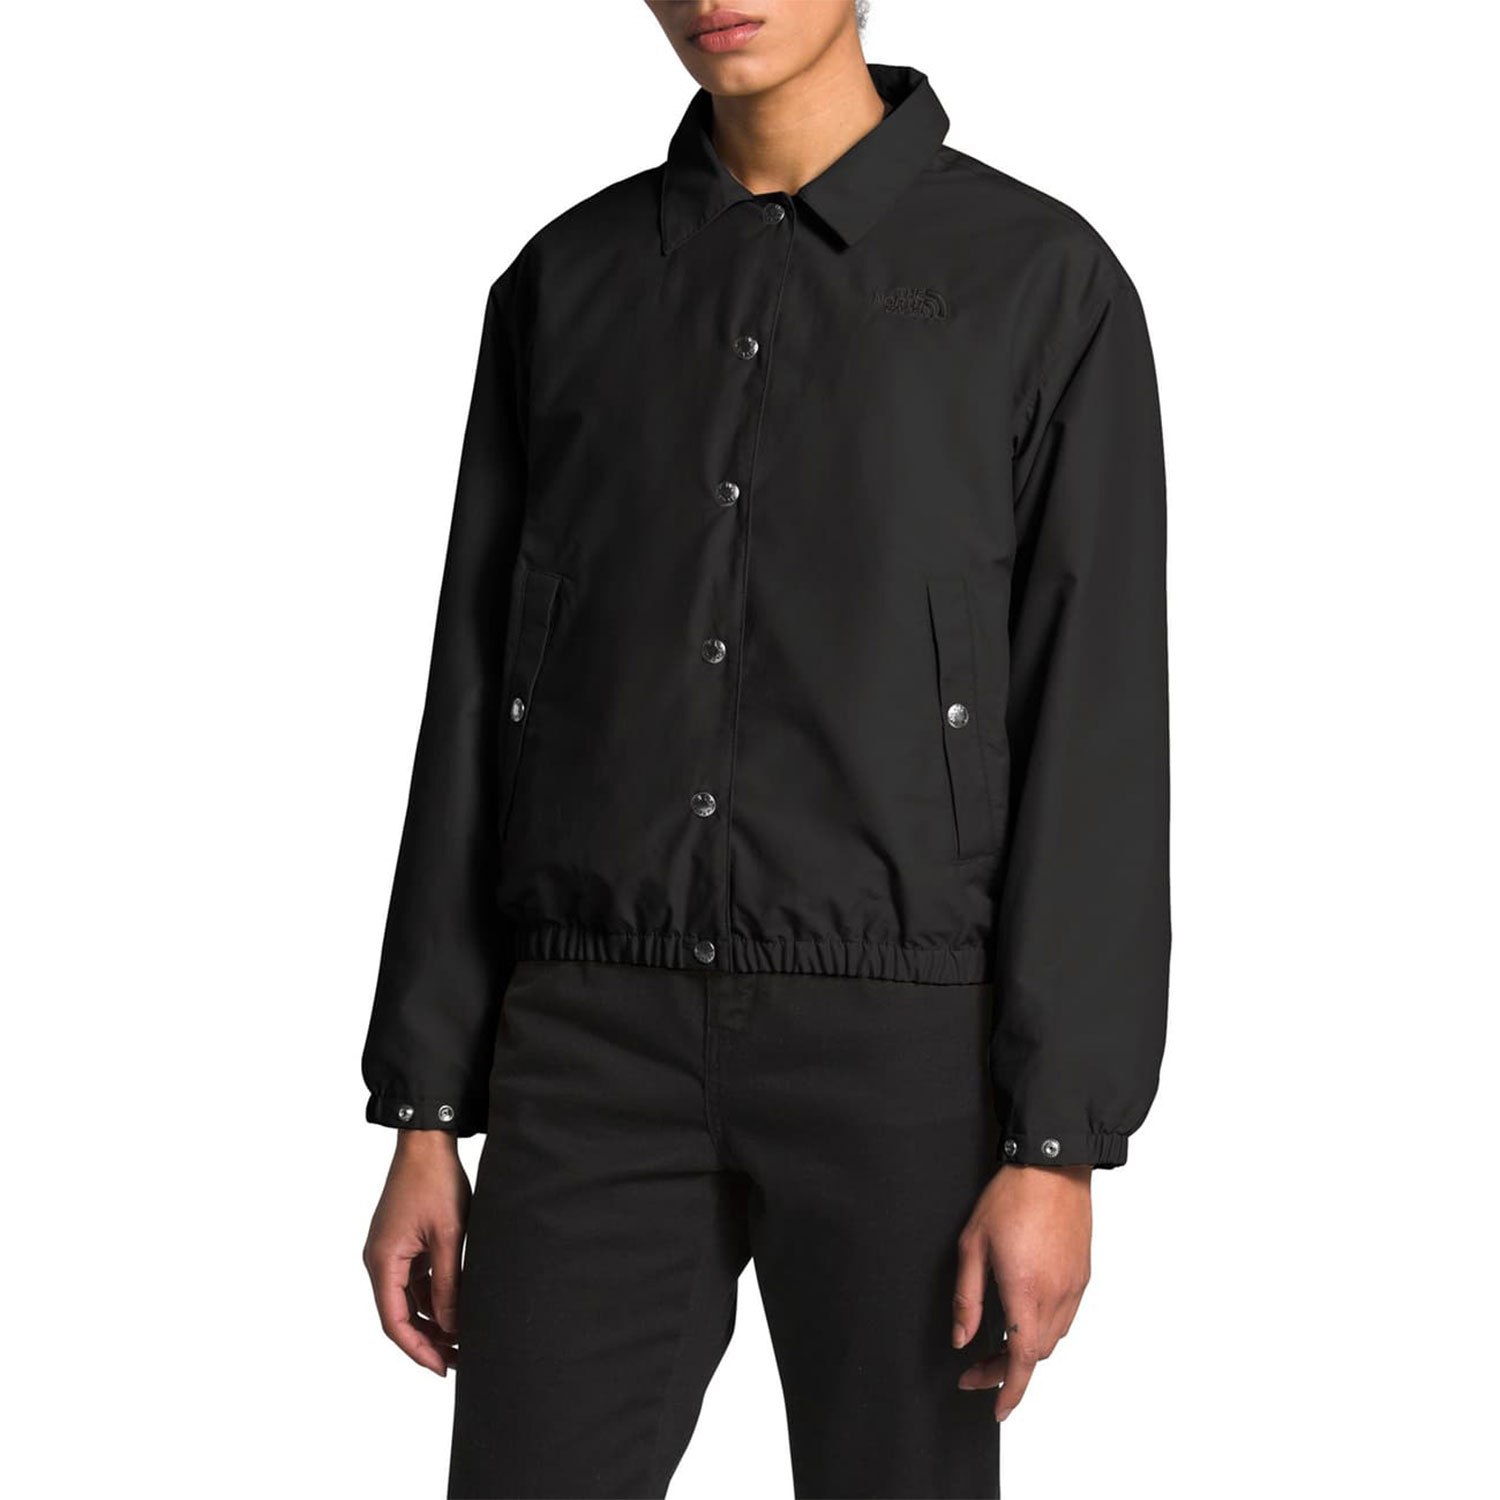 north face coach collared jacket